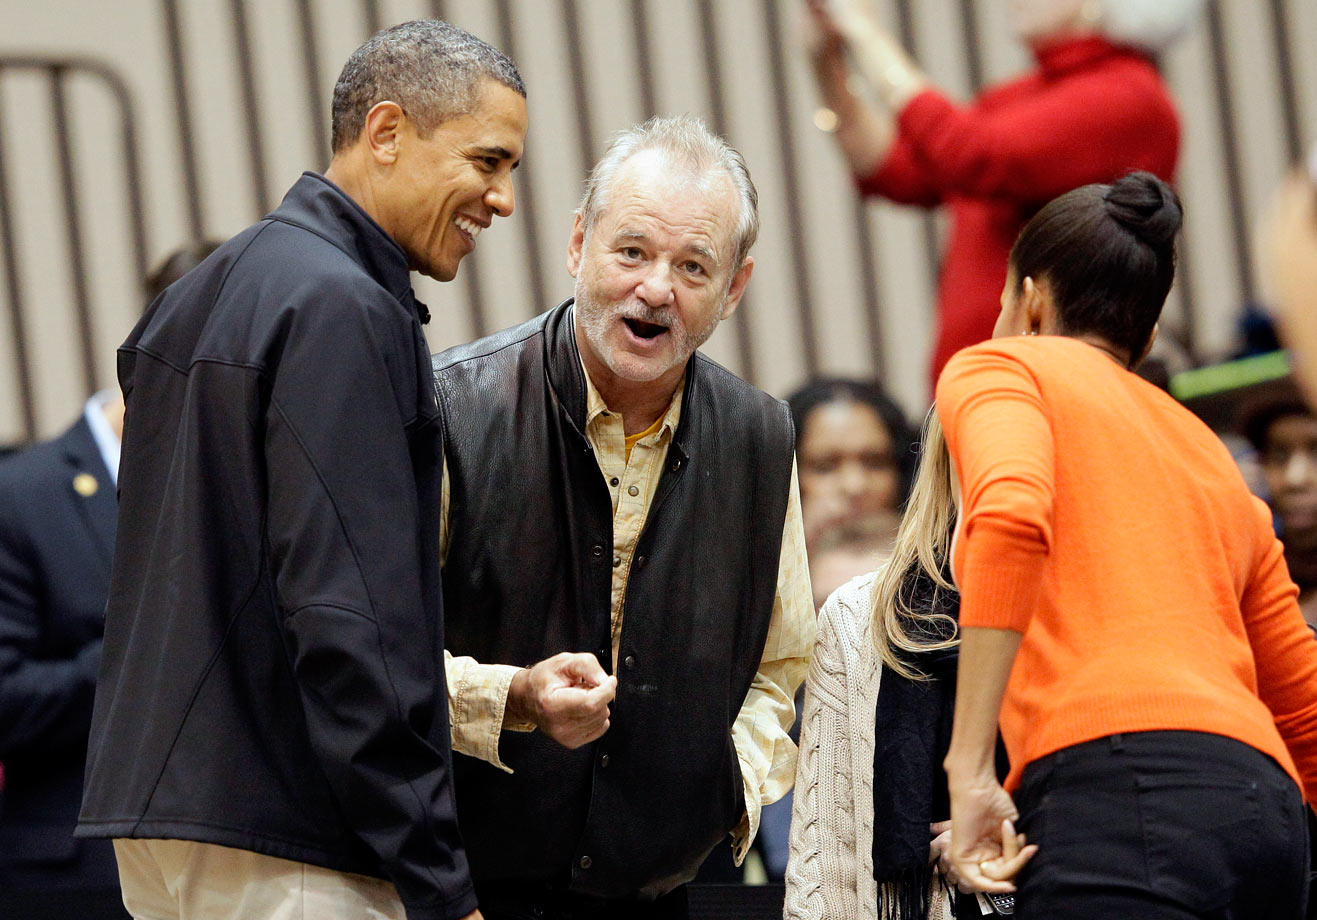 Bill Murray shares a laugh with President Barack Obama and First Lady Michelle Obama before an NCAA basketball game between Oregon State and Towson on Nov. 26, 2011 in Towson, Md.